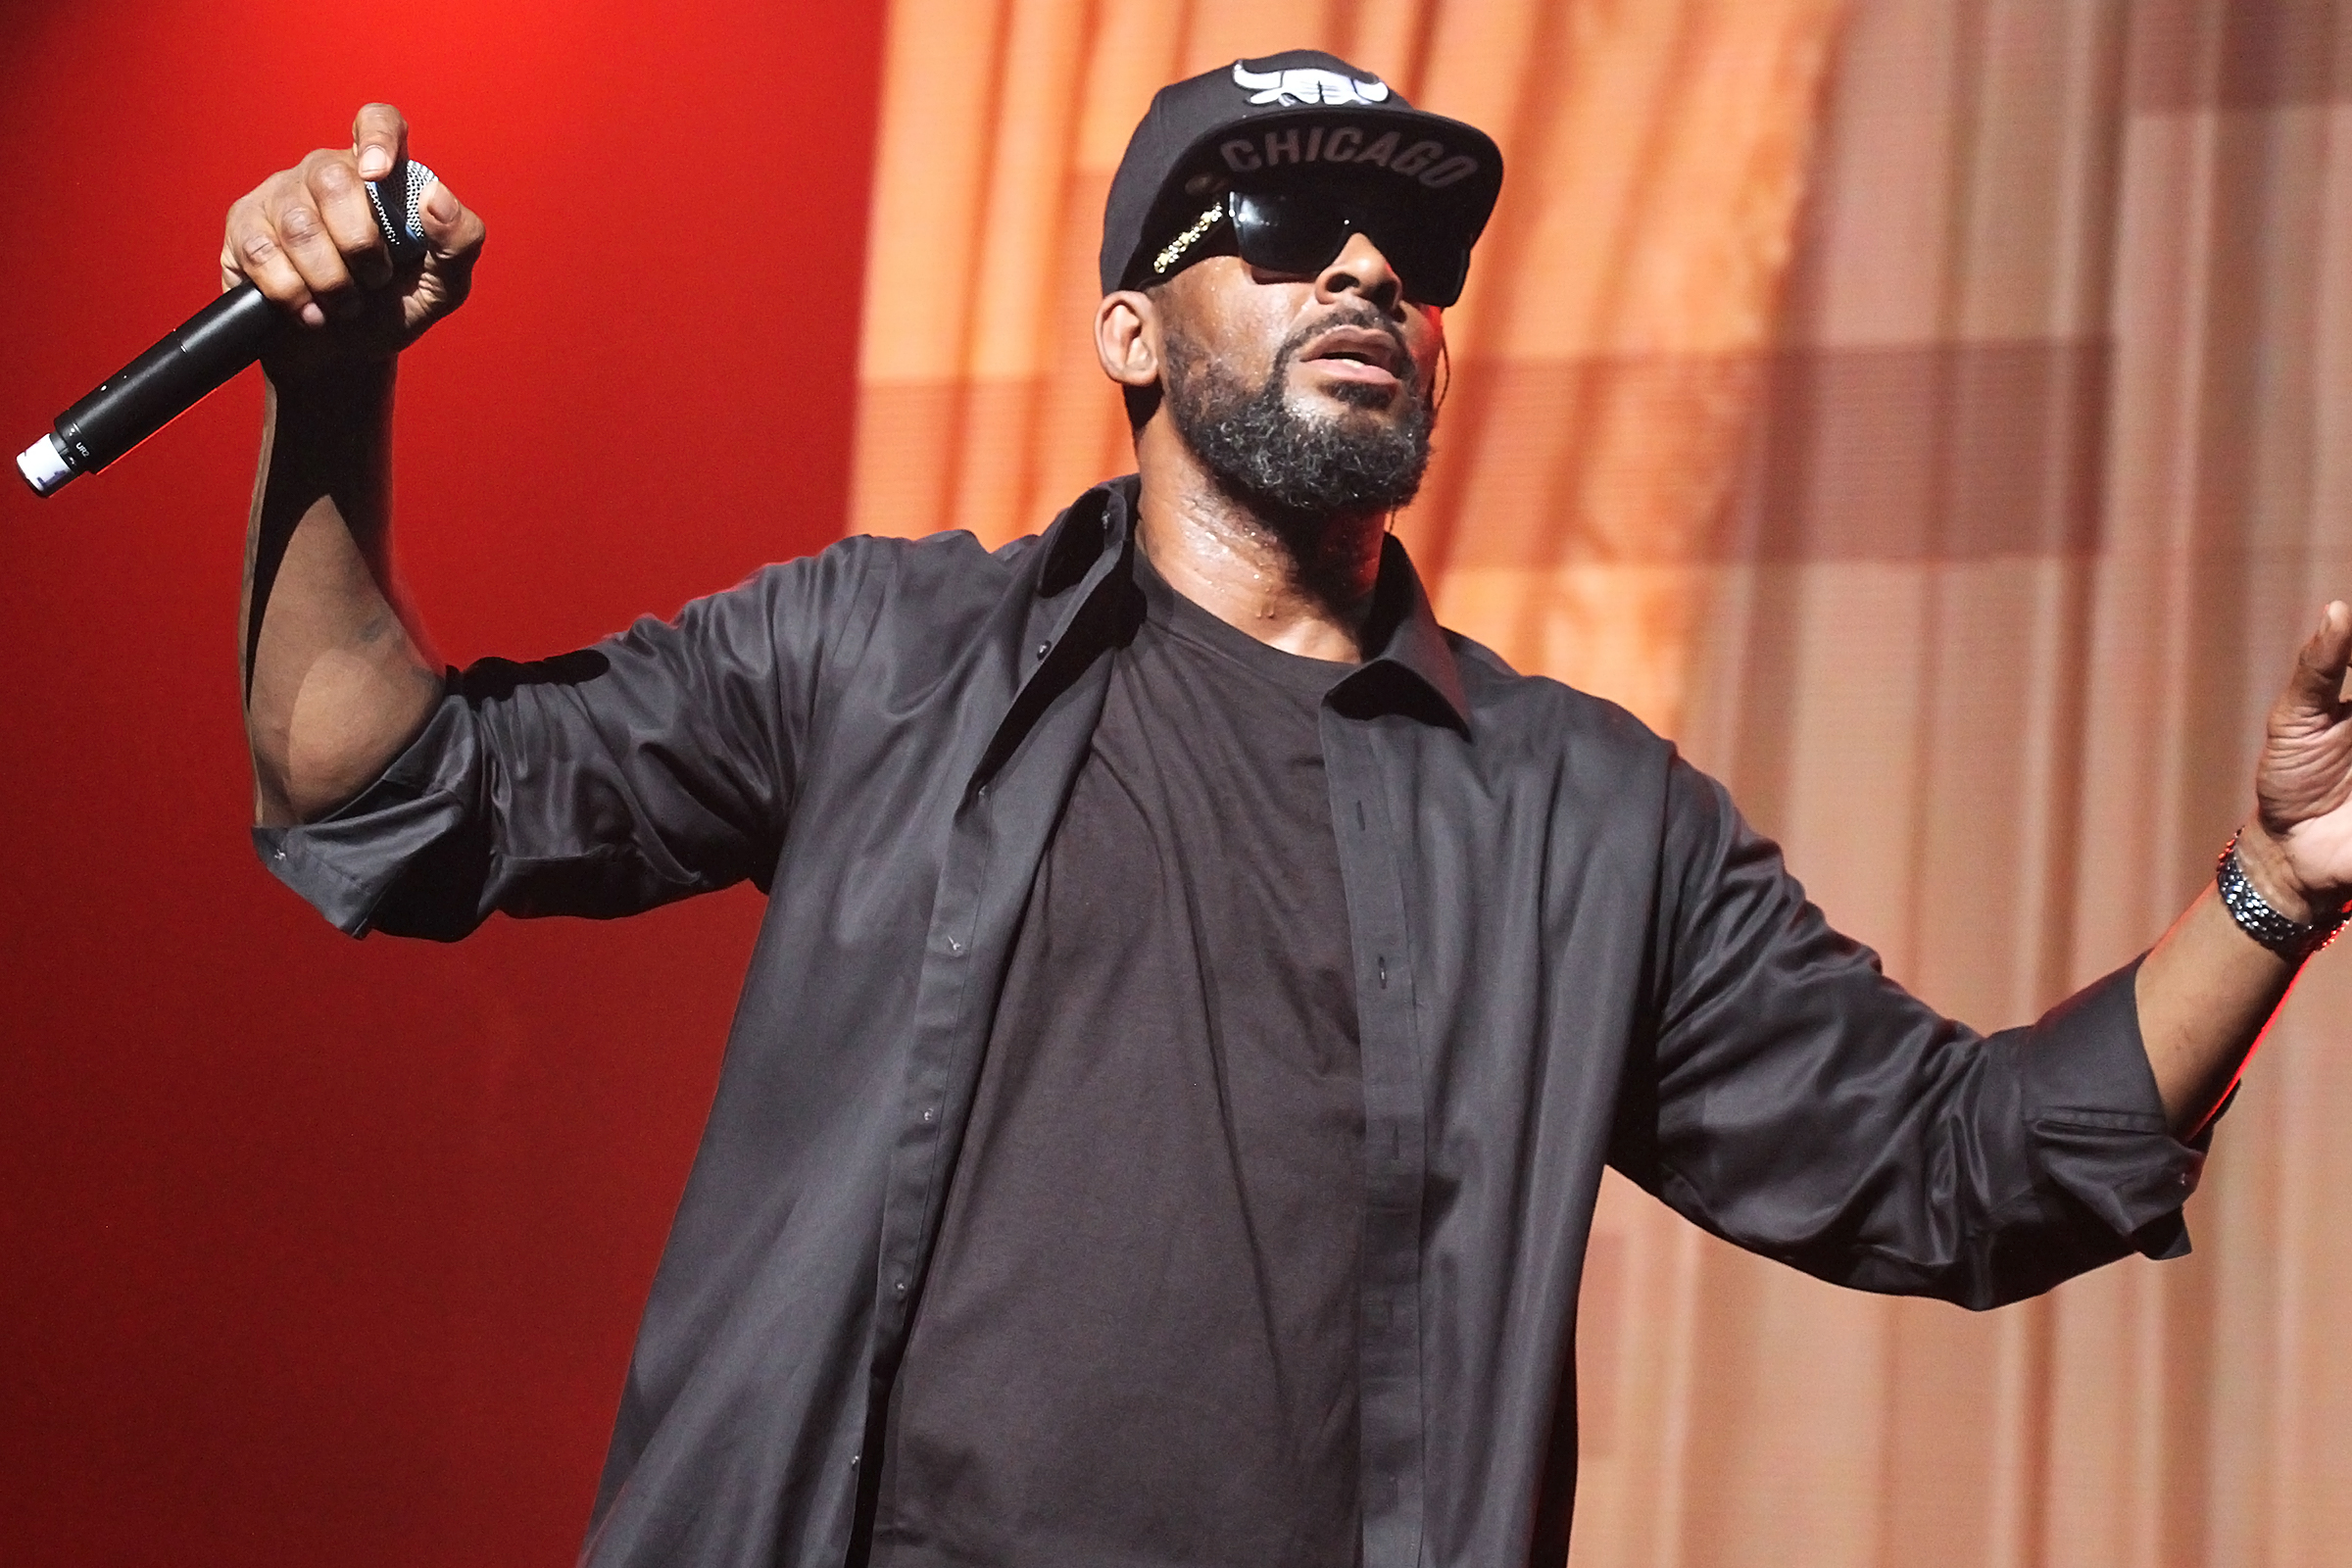 R. Kelly May Be Indicted Over New Sex Tape With Allegedly Underage Girl